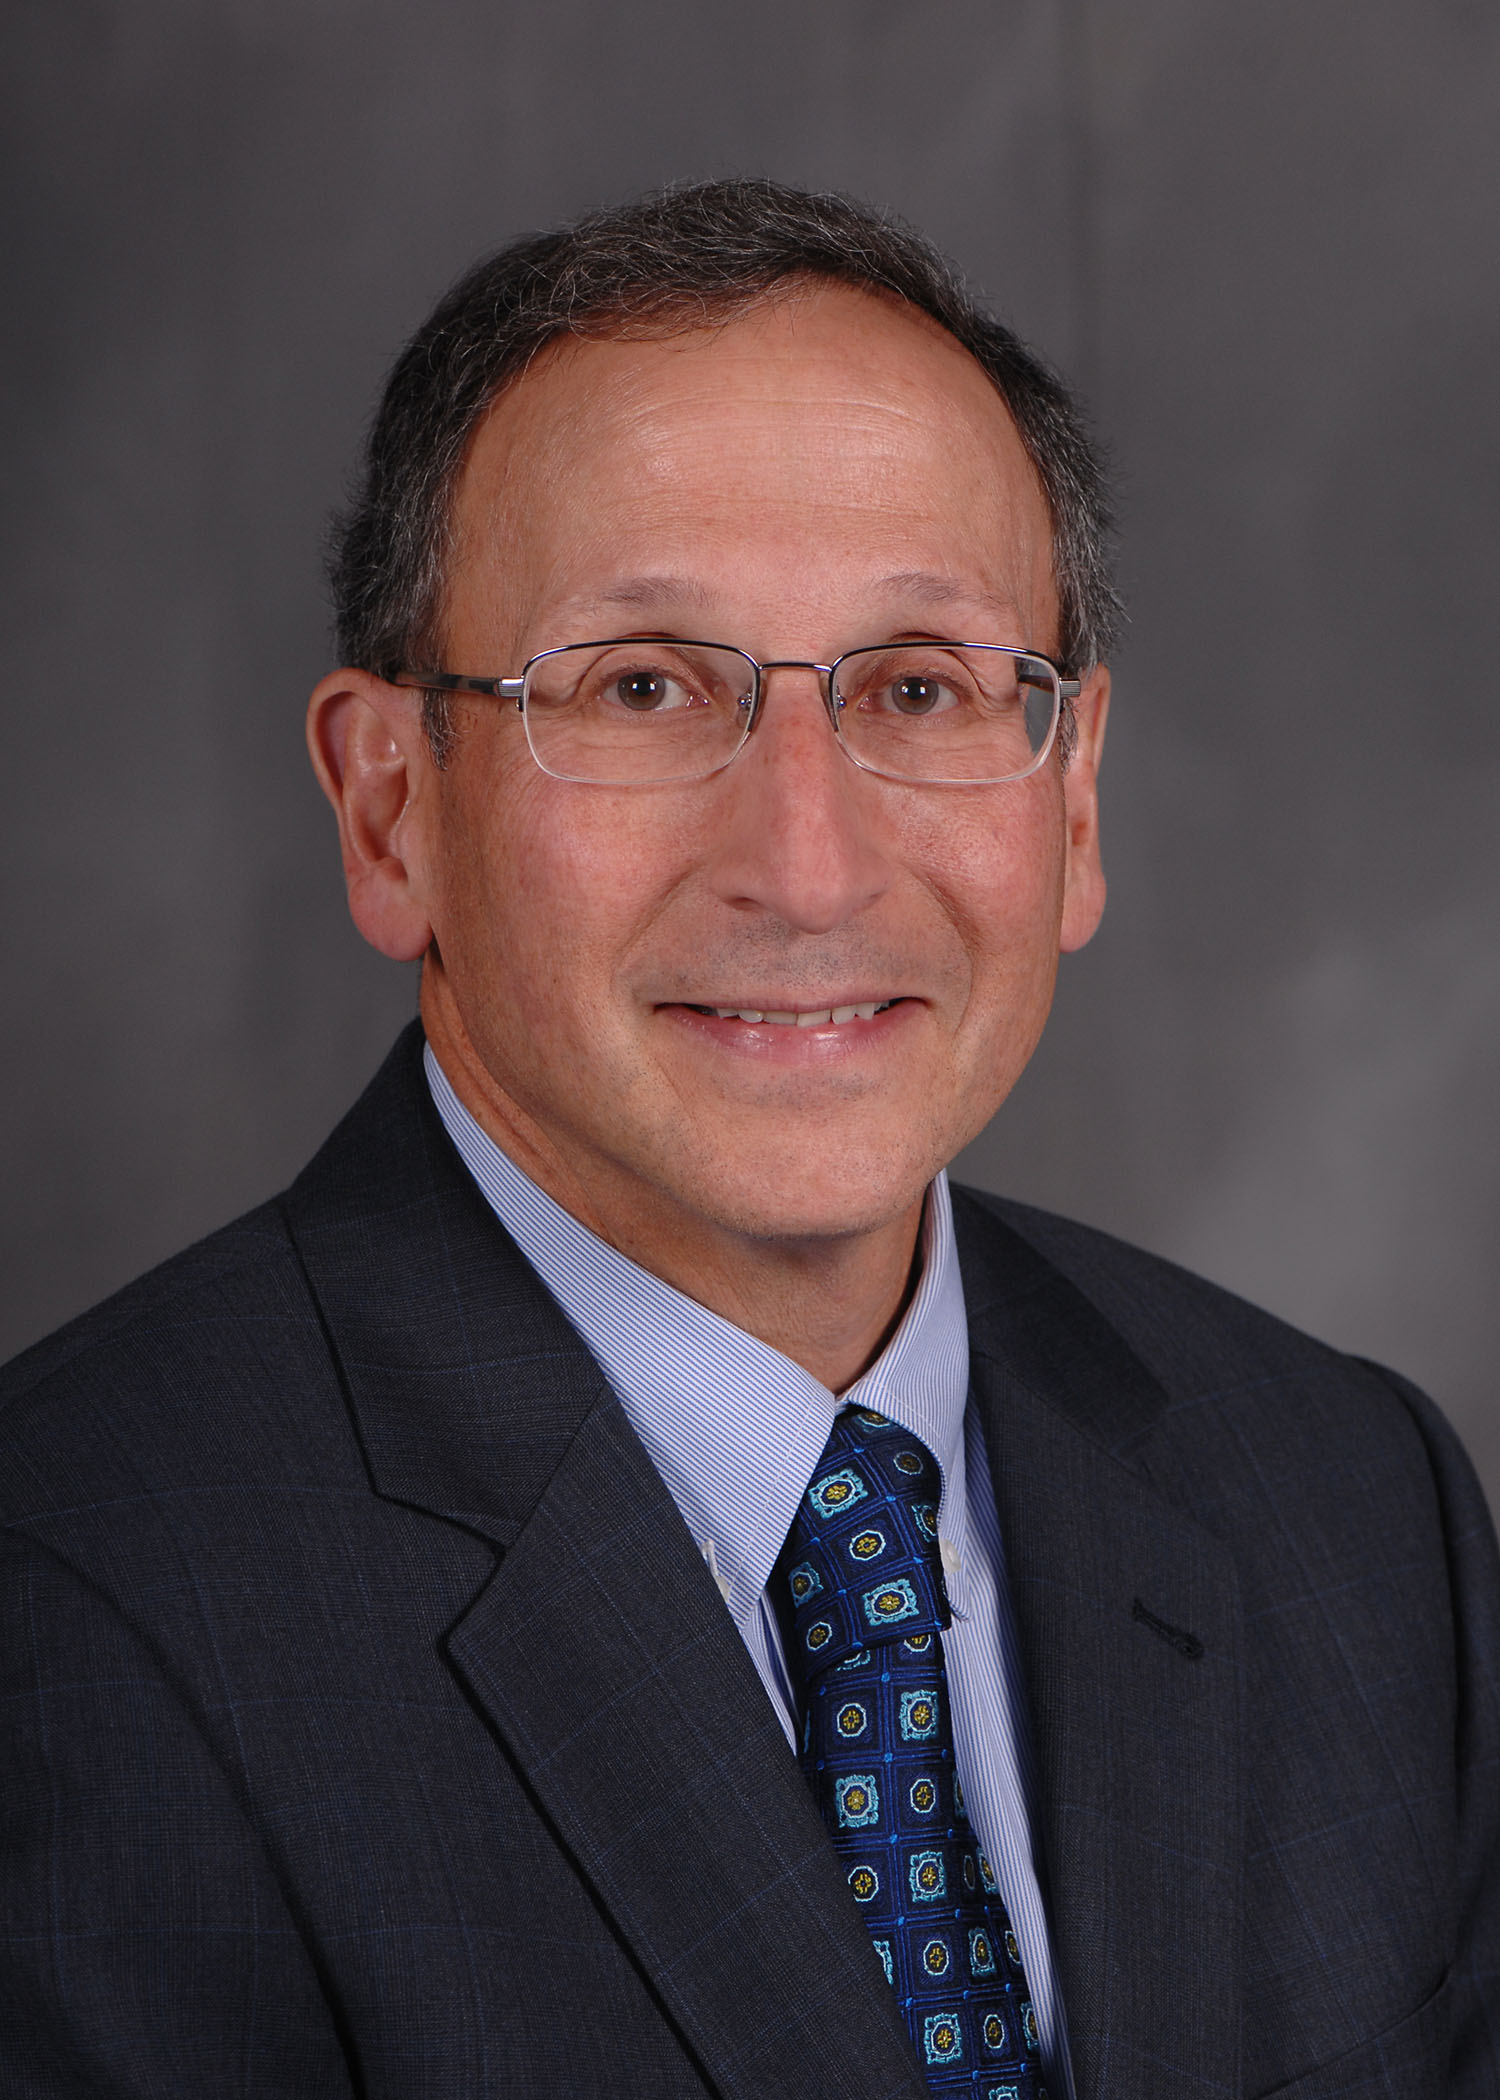 Paul DiCorleto, Kent State's Vice President for Research and Sponsored Programs